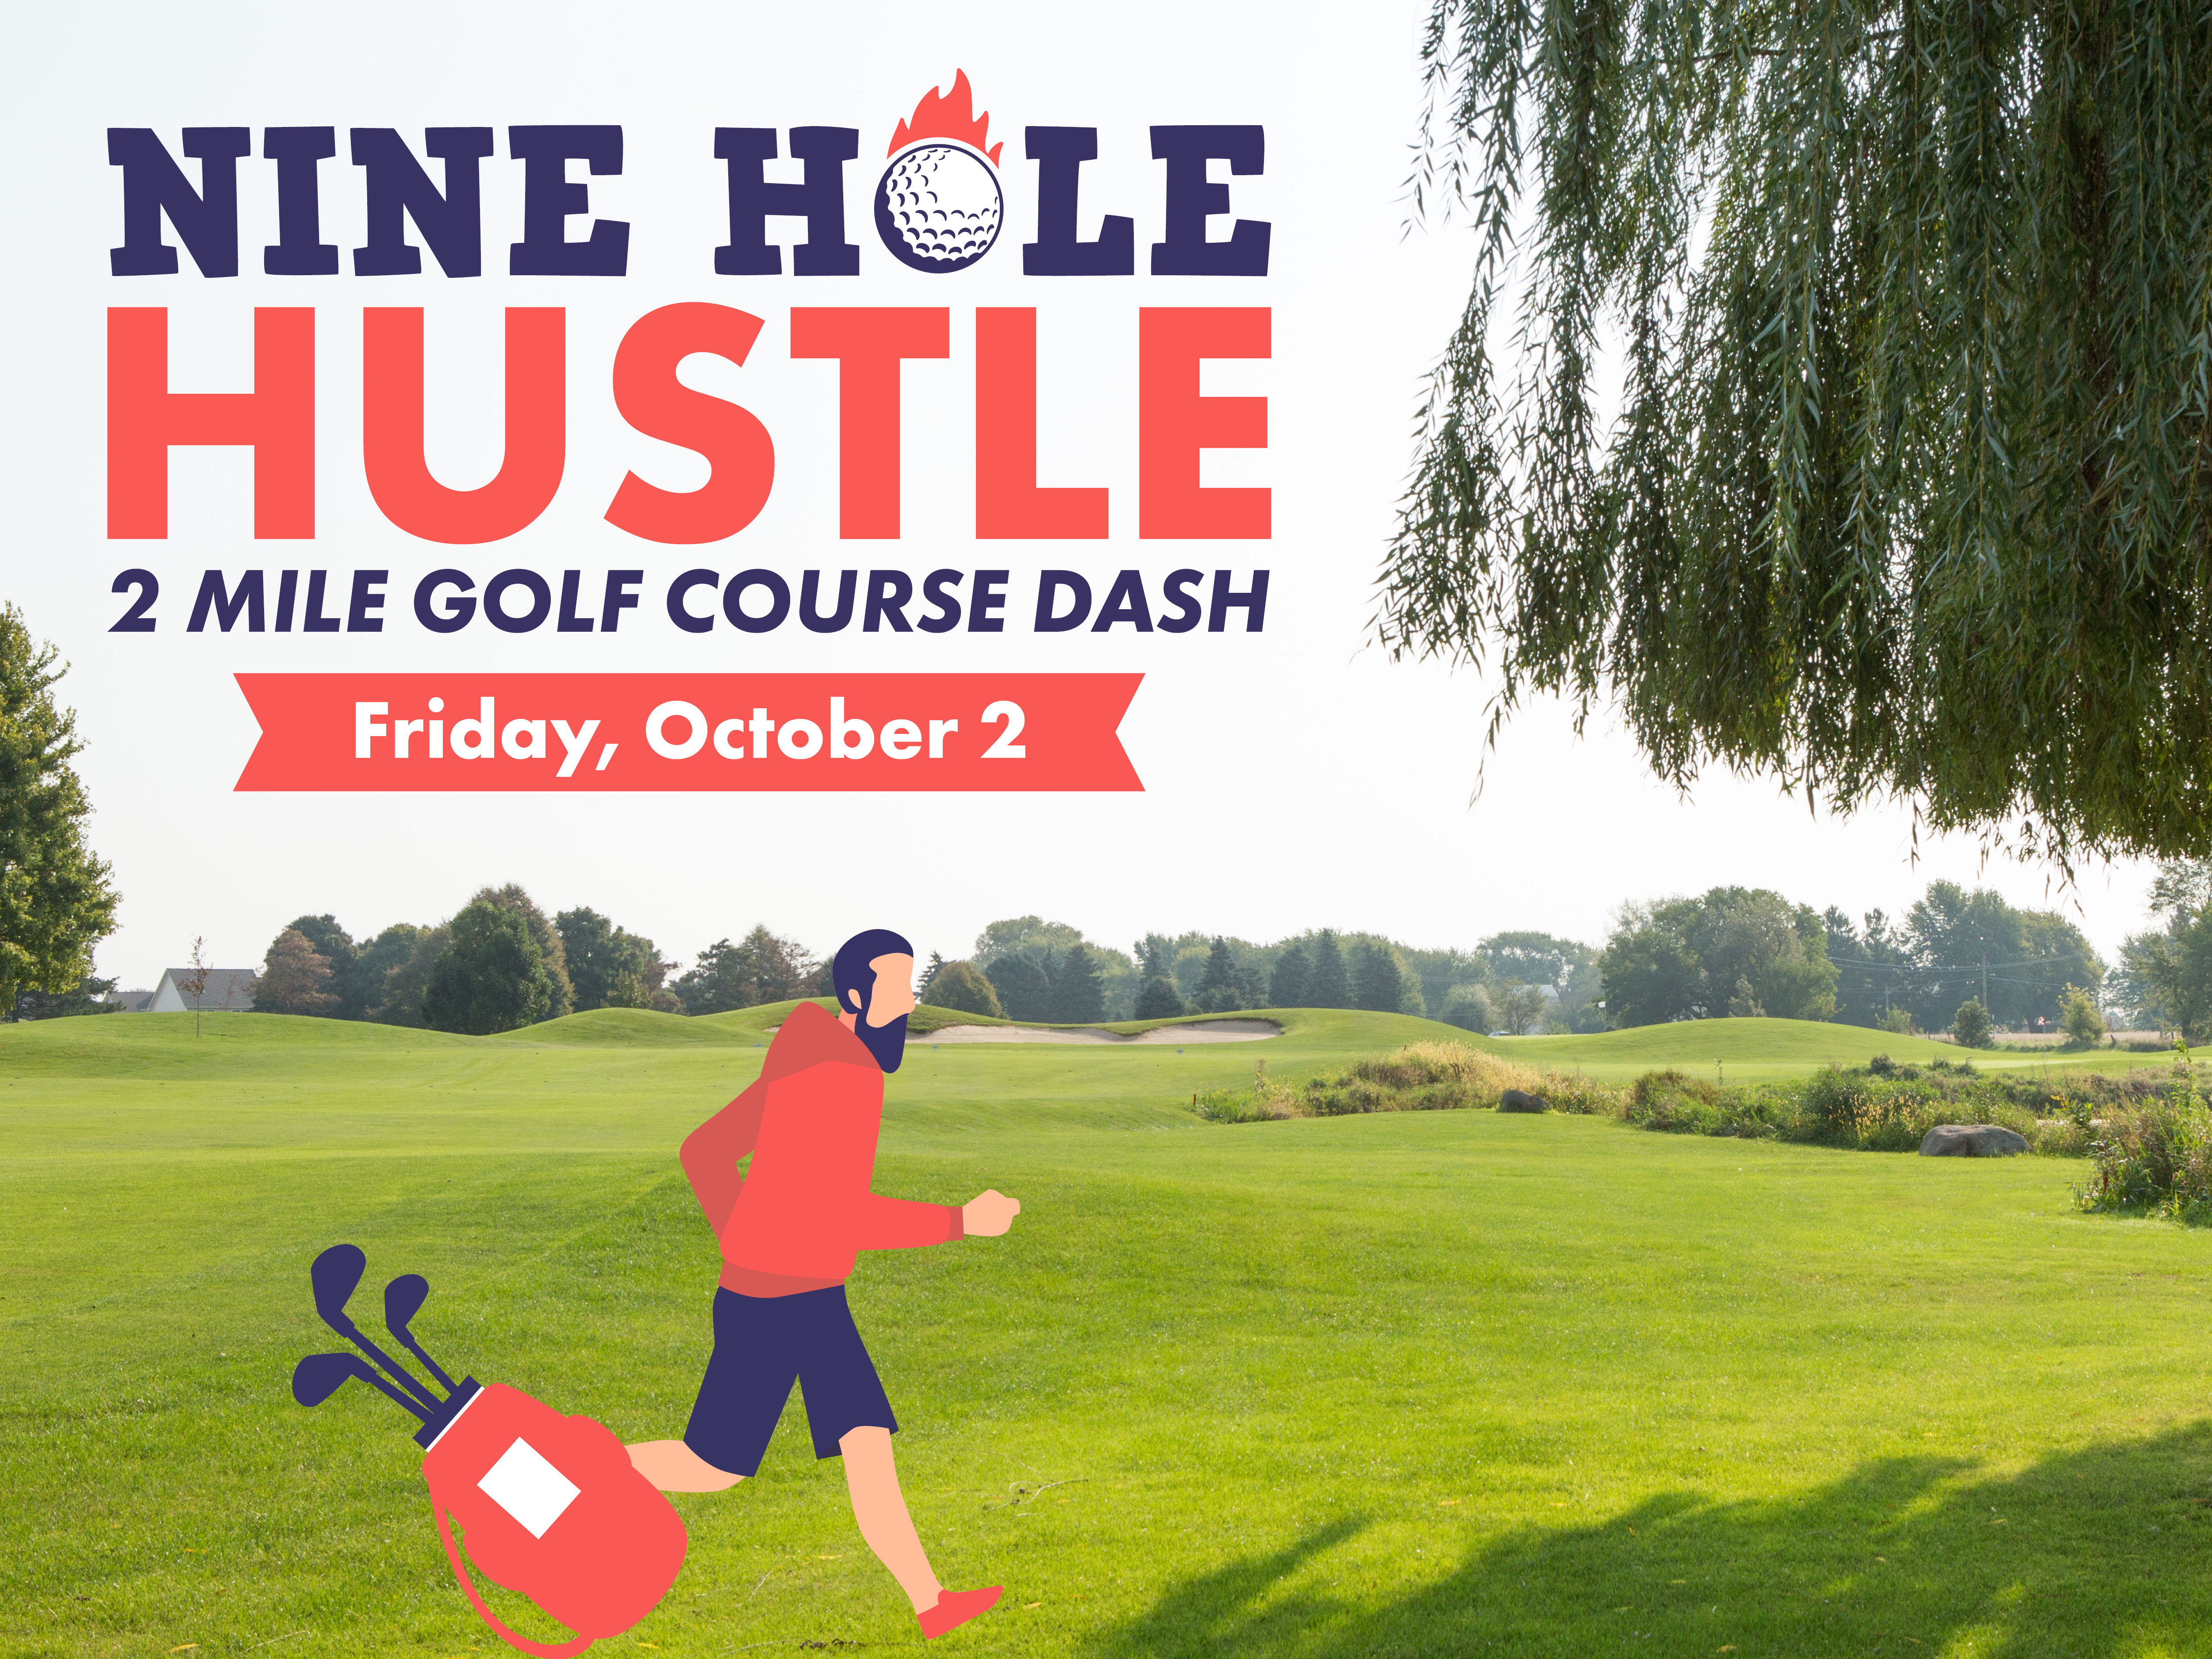 Nine Hole Hustle